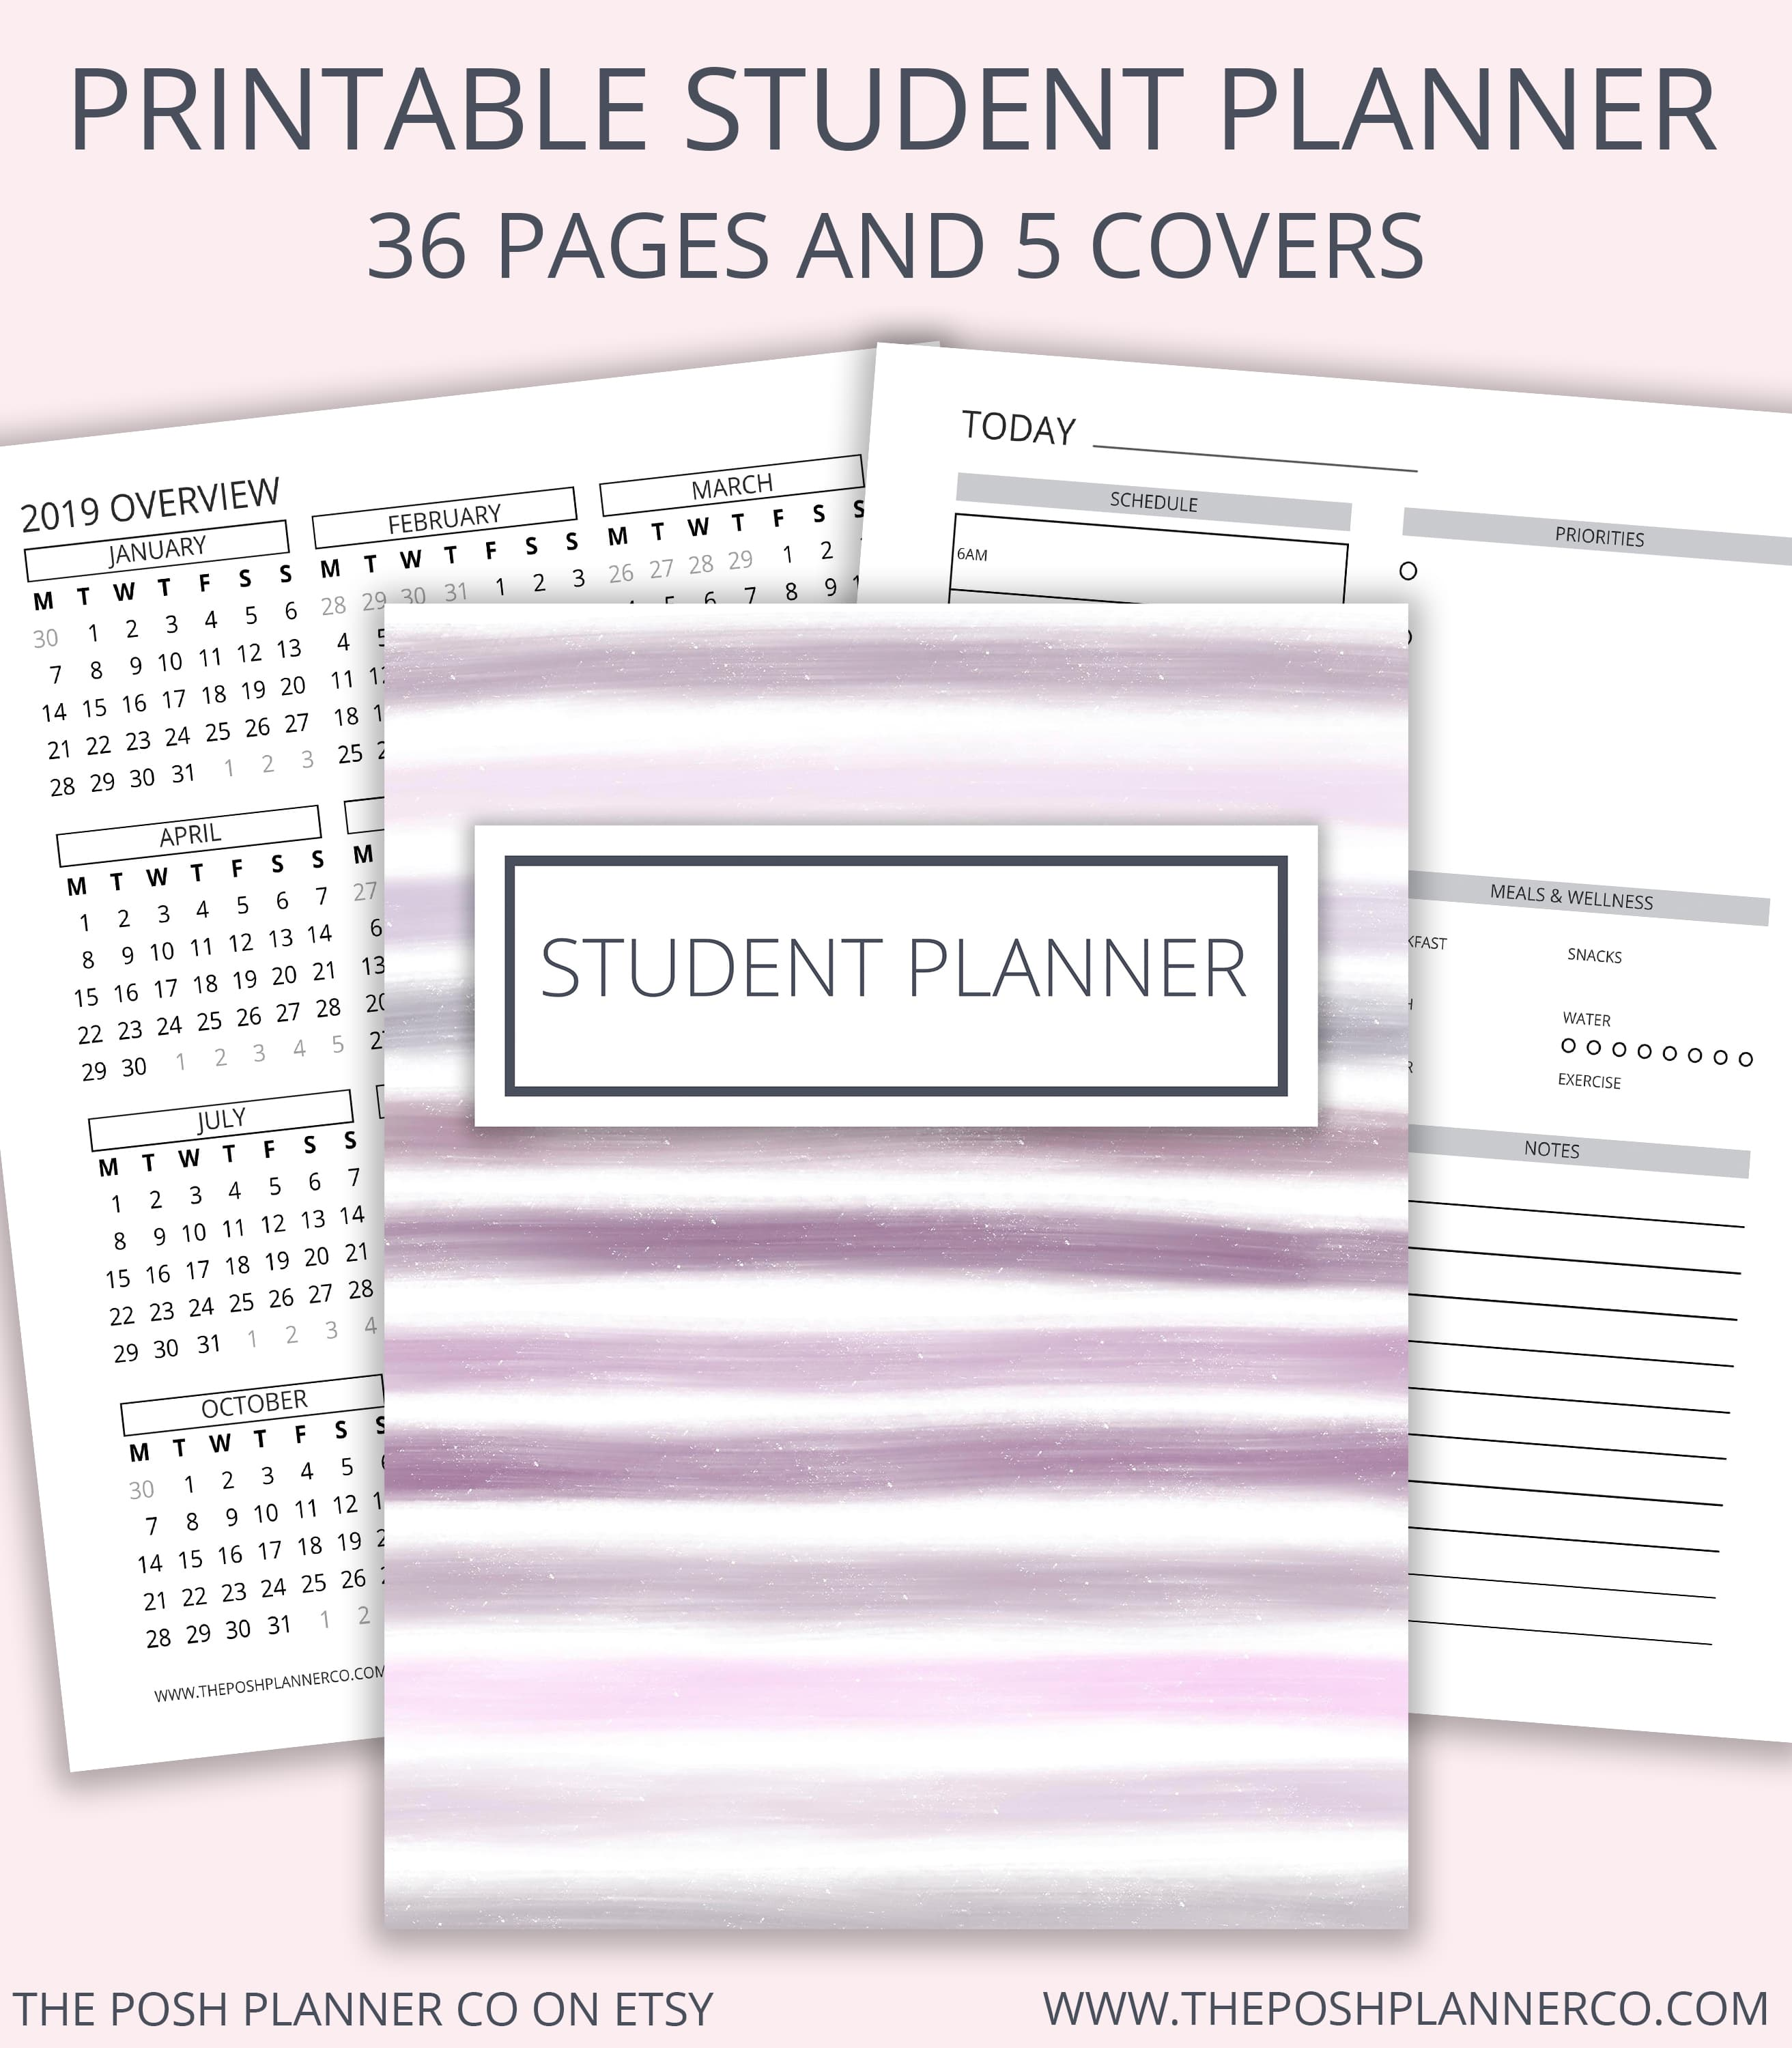 picture about Student Planner Printable referred to as Printable Scholar Planner - Printable Planner Internet pages